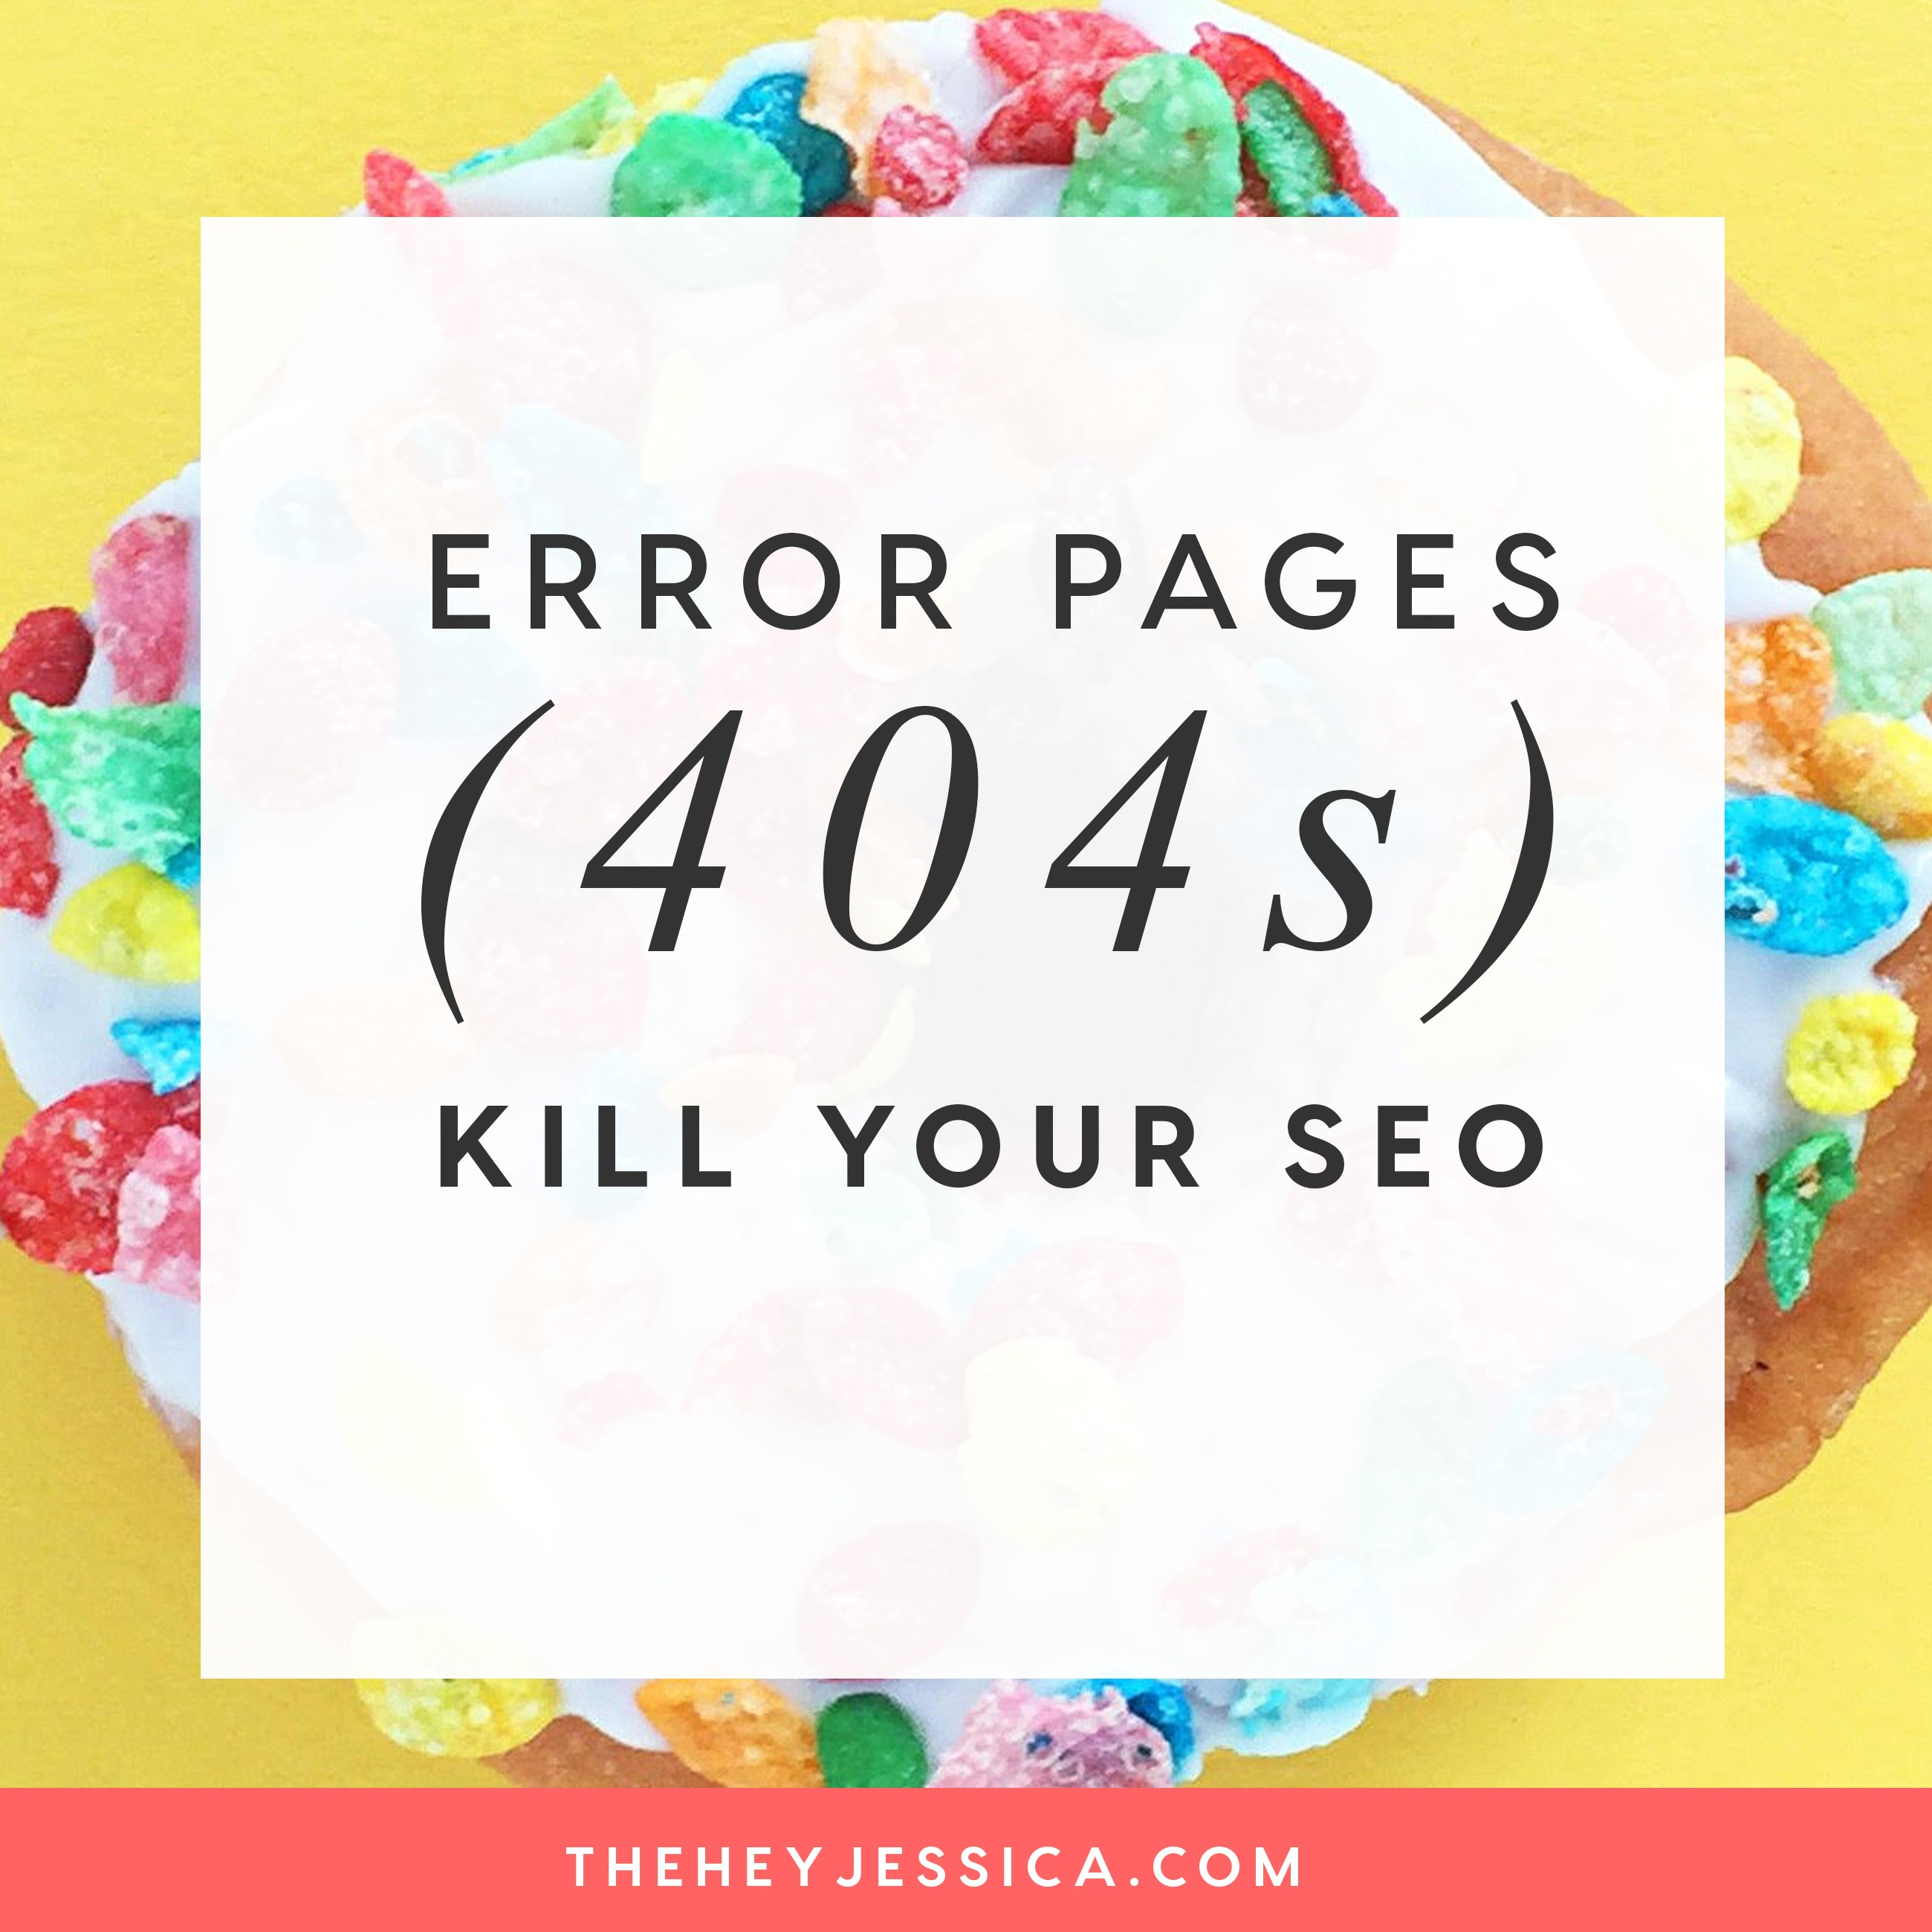 Error pages (404s) KILL your SEO